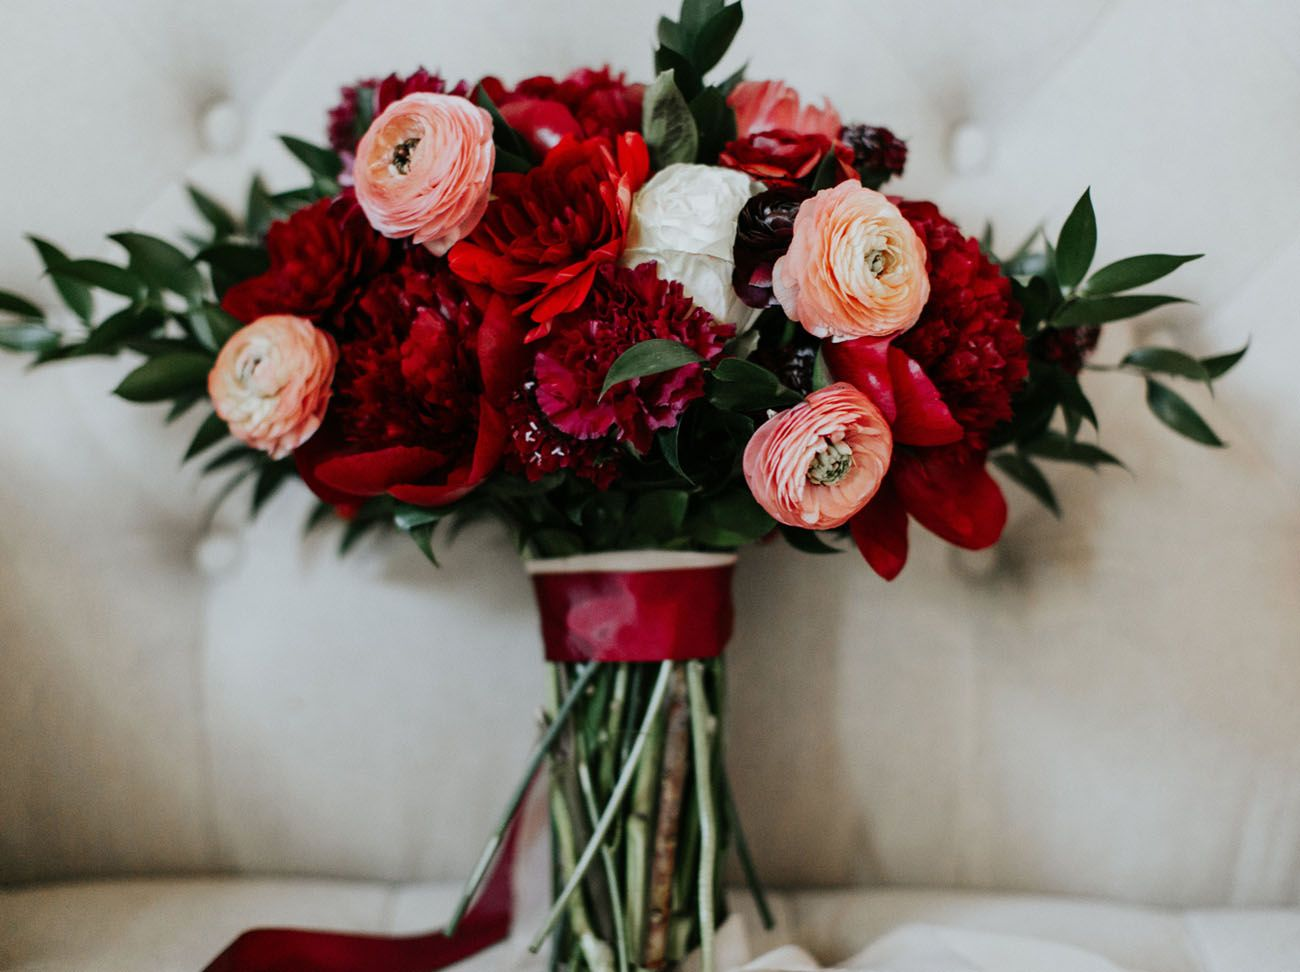 The Bridesmaids Wore Crimson At This Luxe Boho Wedding Green Wedding Shoes Red Bouquet Wedding Ranunculus Wedding Bouquet Red Bouquet